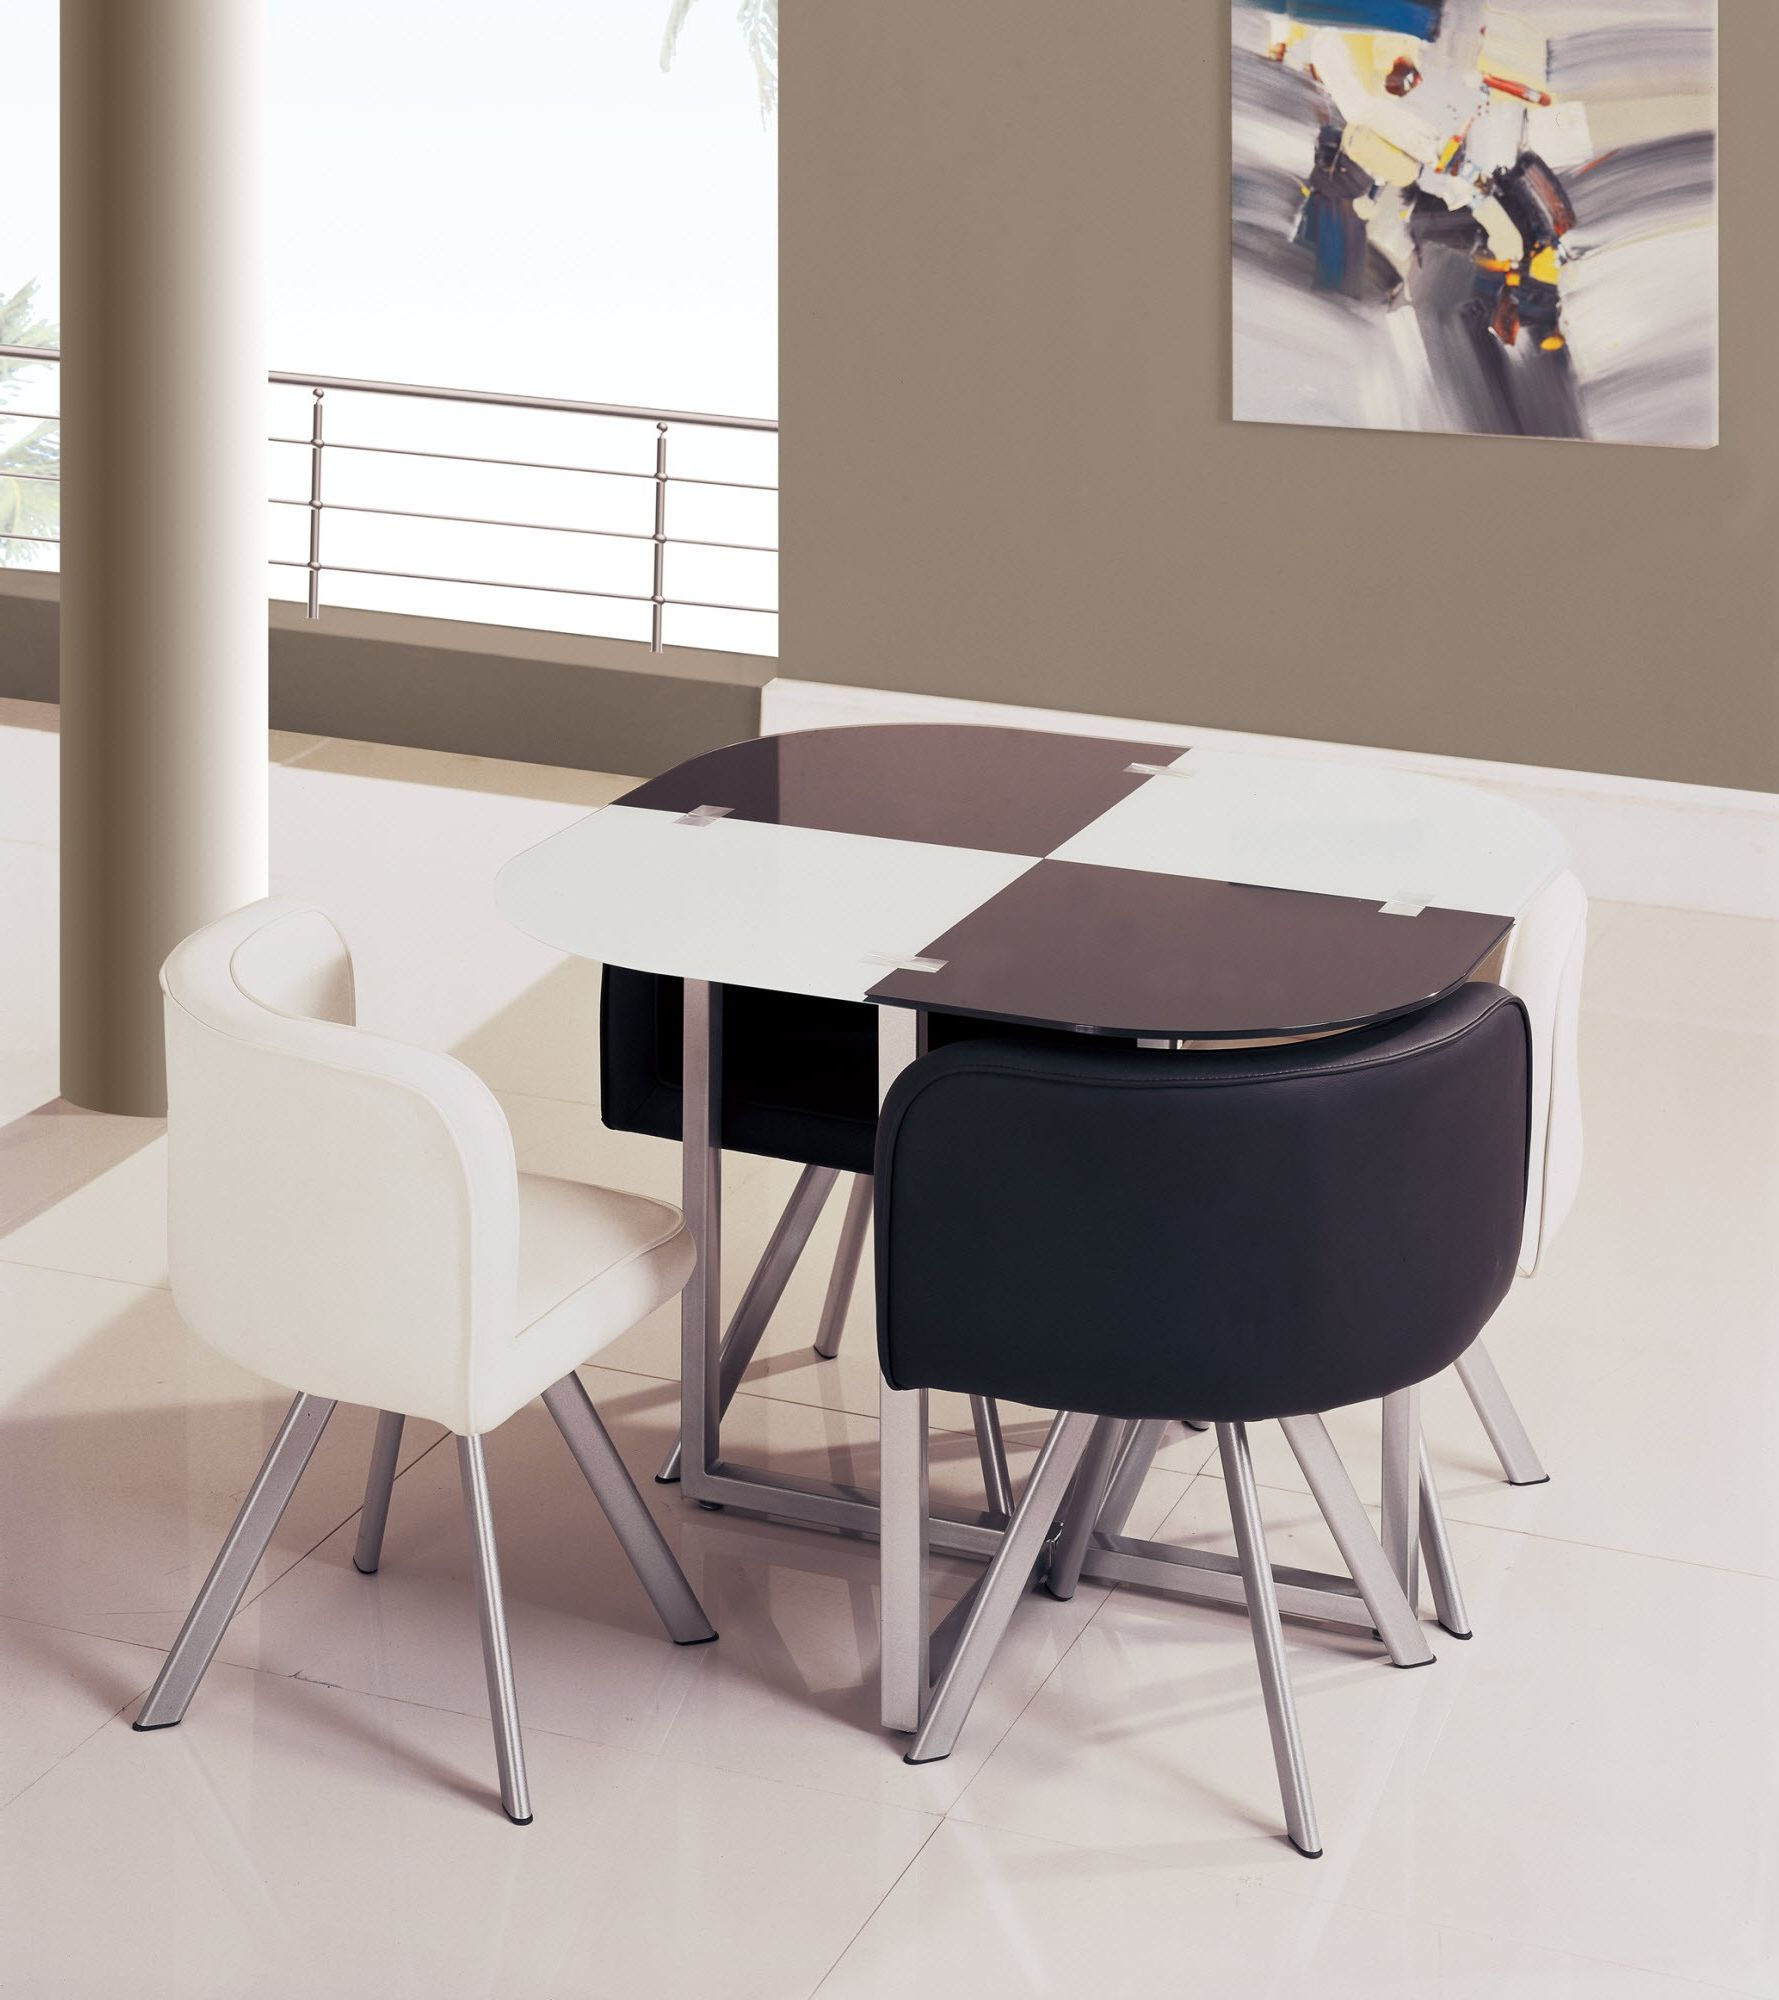 Good space saver dining set homesfeed for Small dining chairs small spaces